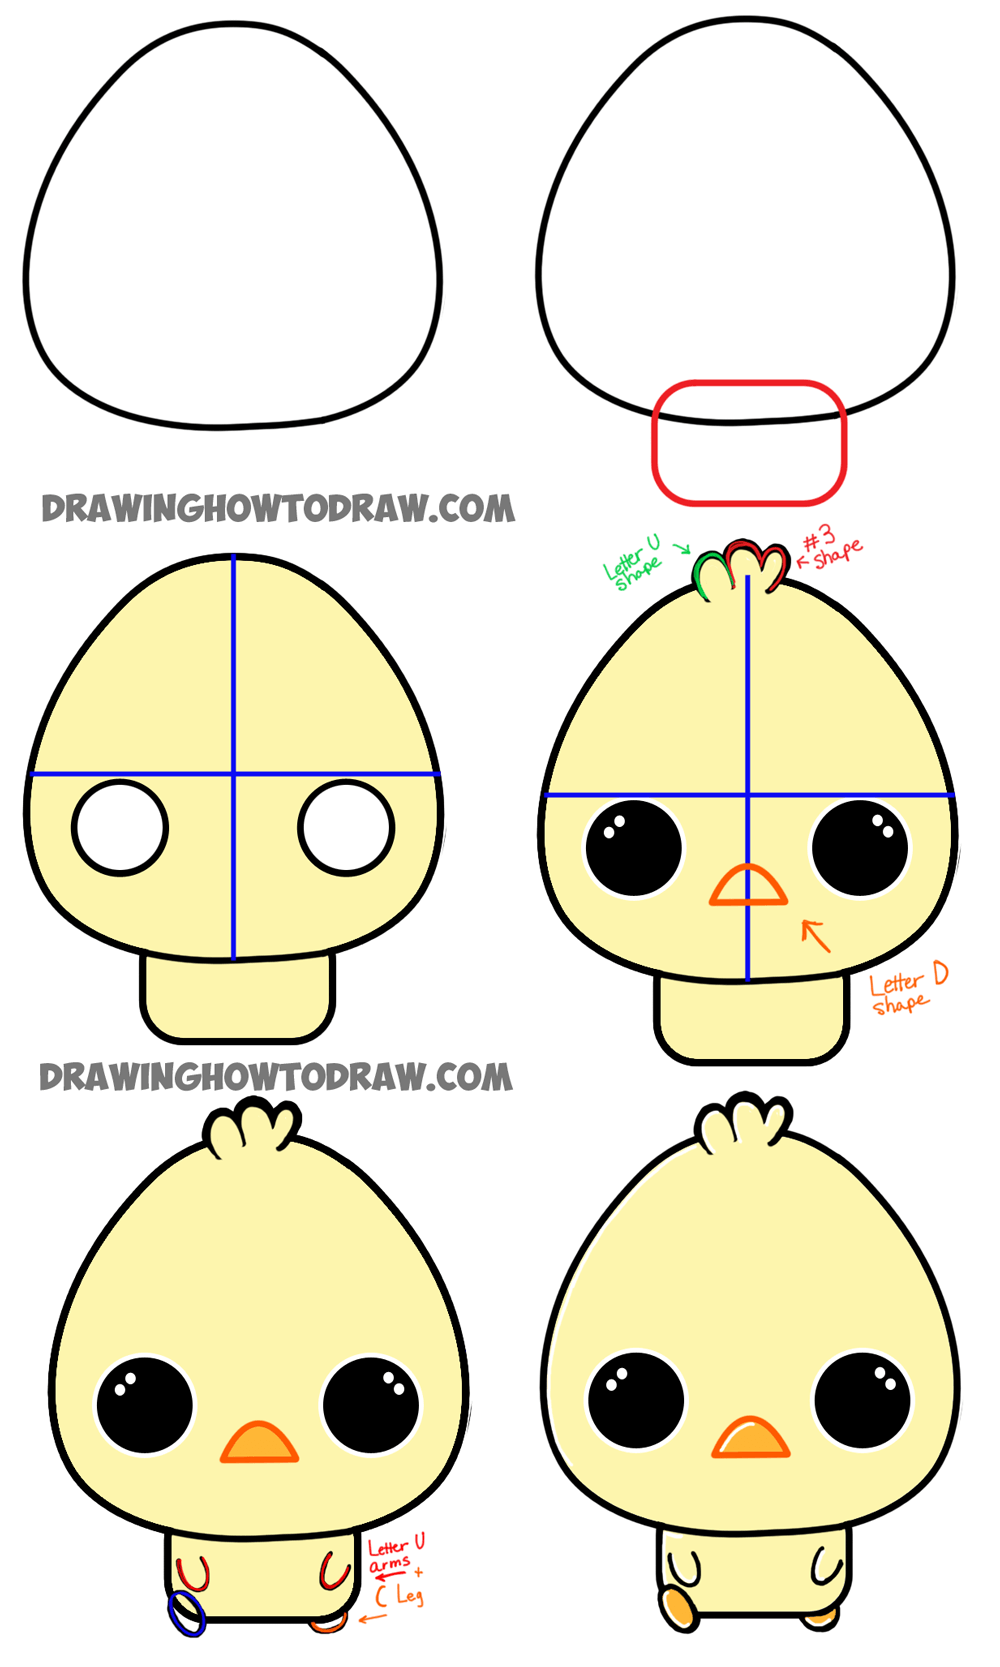 How to Draw a Cartoon Chibi Baby Chick - Easy Tutorial for ...